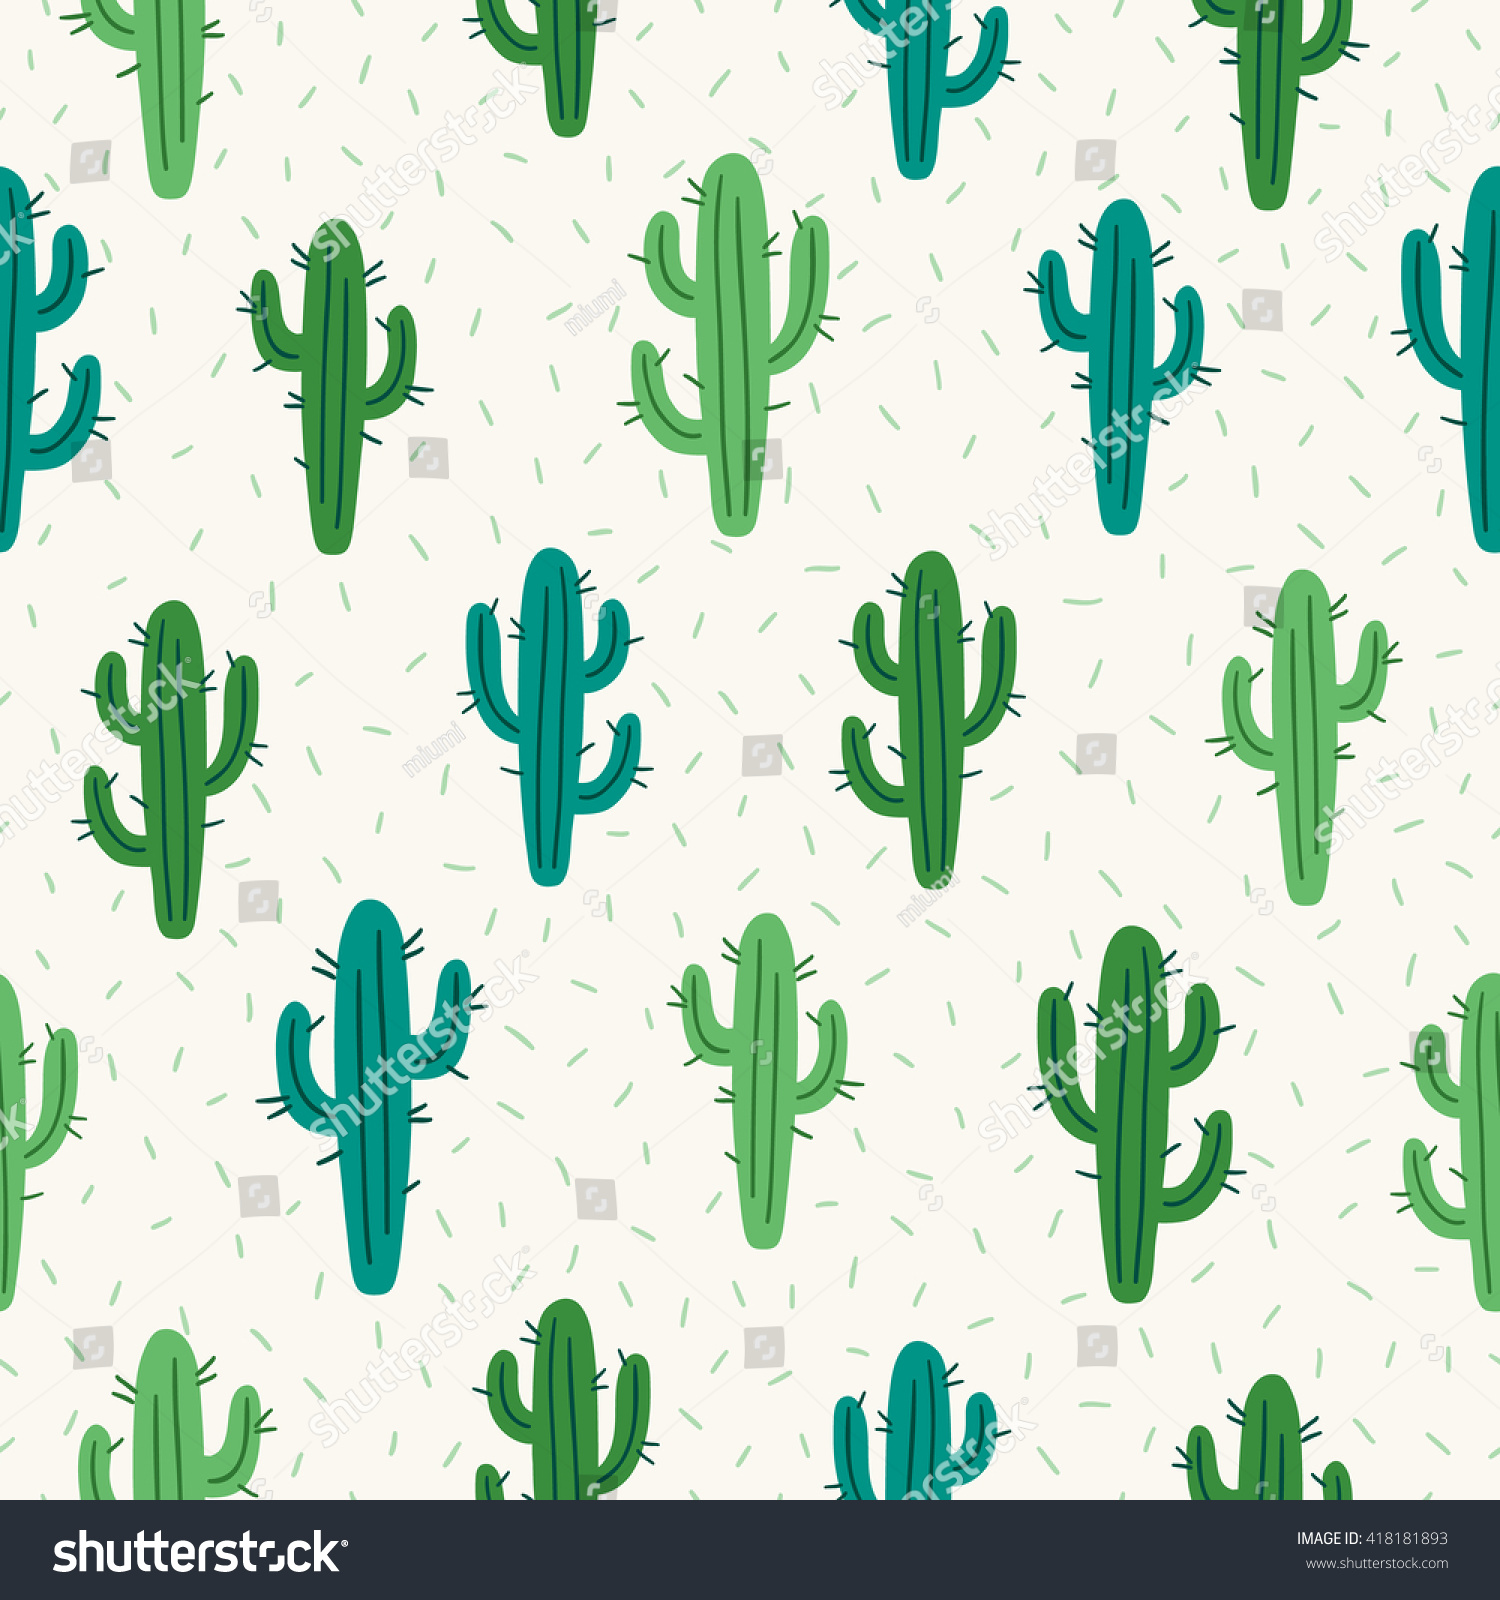 Seamless Pattern Cactus On White Background Image Vectorielle De